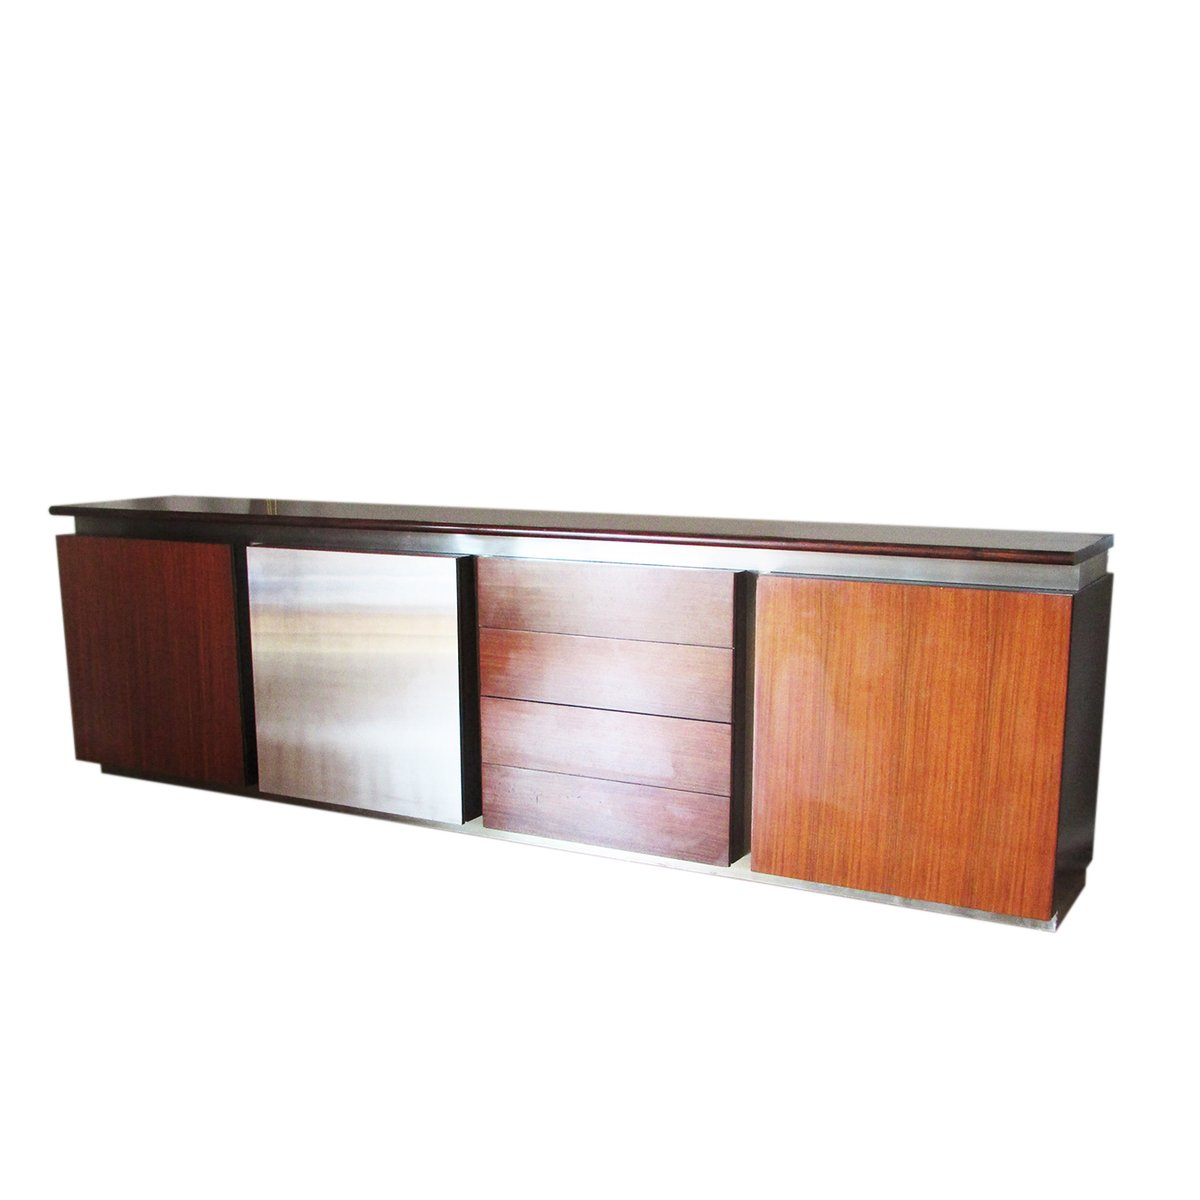 Parioli sideboard by giotto stoppino for acerbis 1977 for for Sideboard 2 50 m